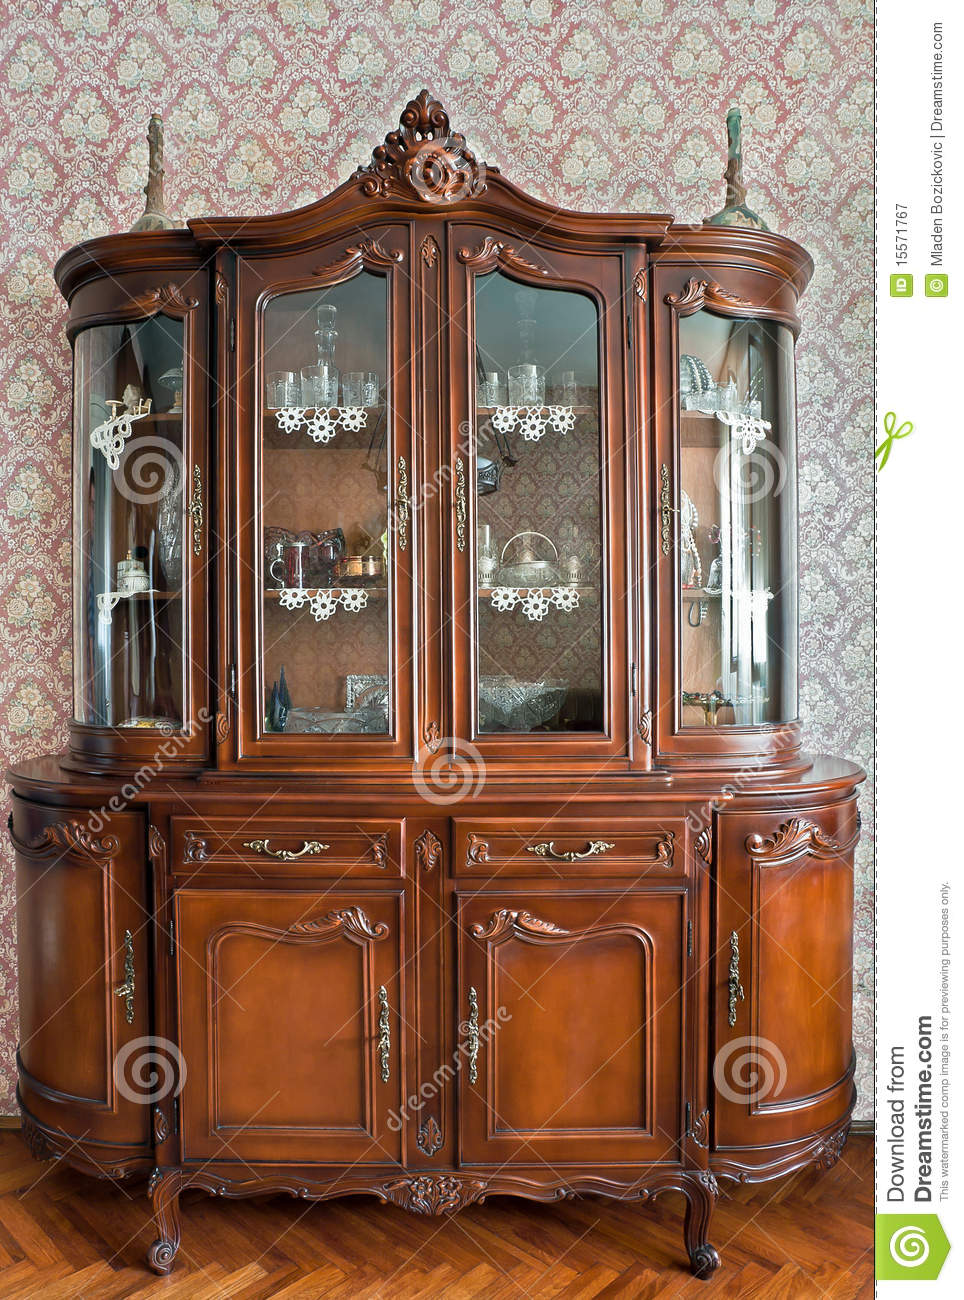 Glass Showcase Designs For Living Room: Antique Showcase Royalty Free Stock Photography